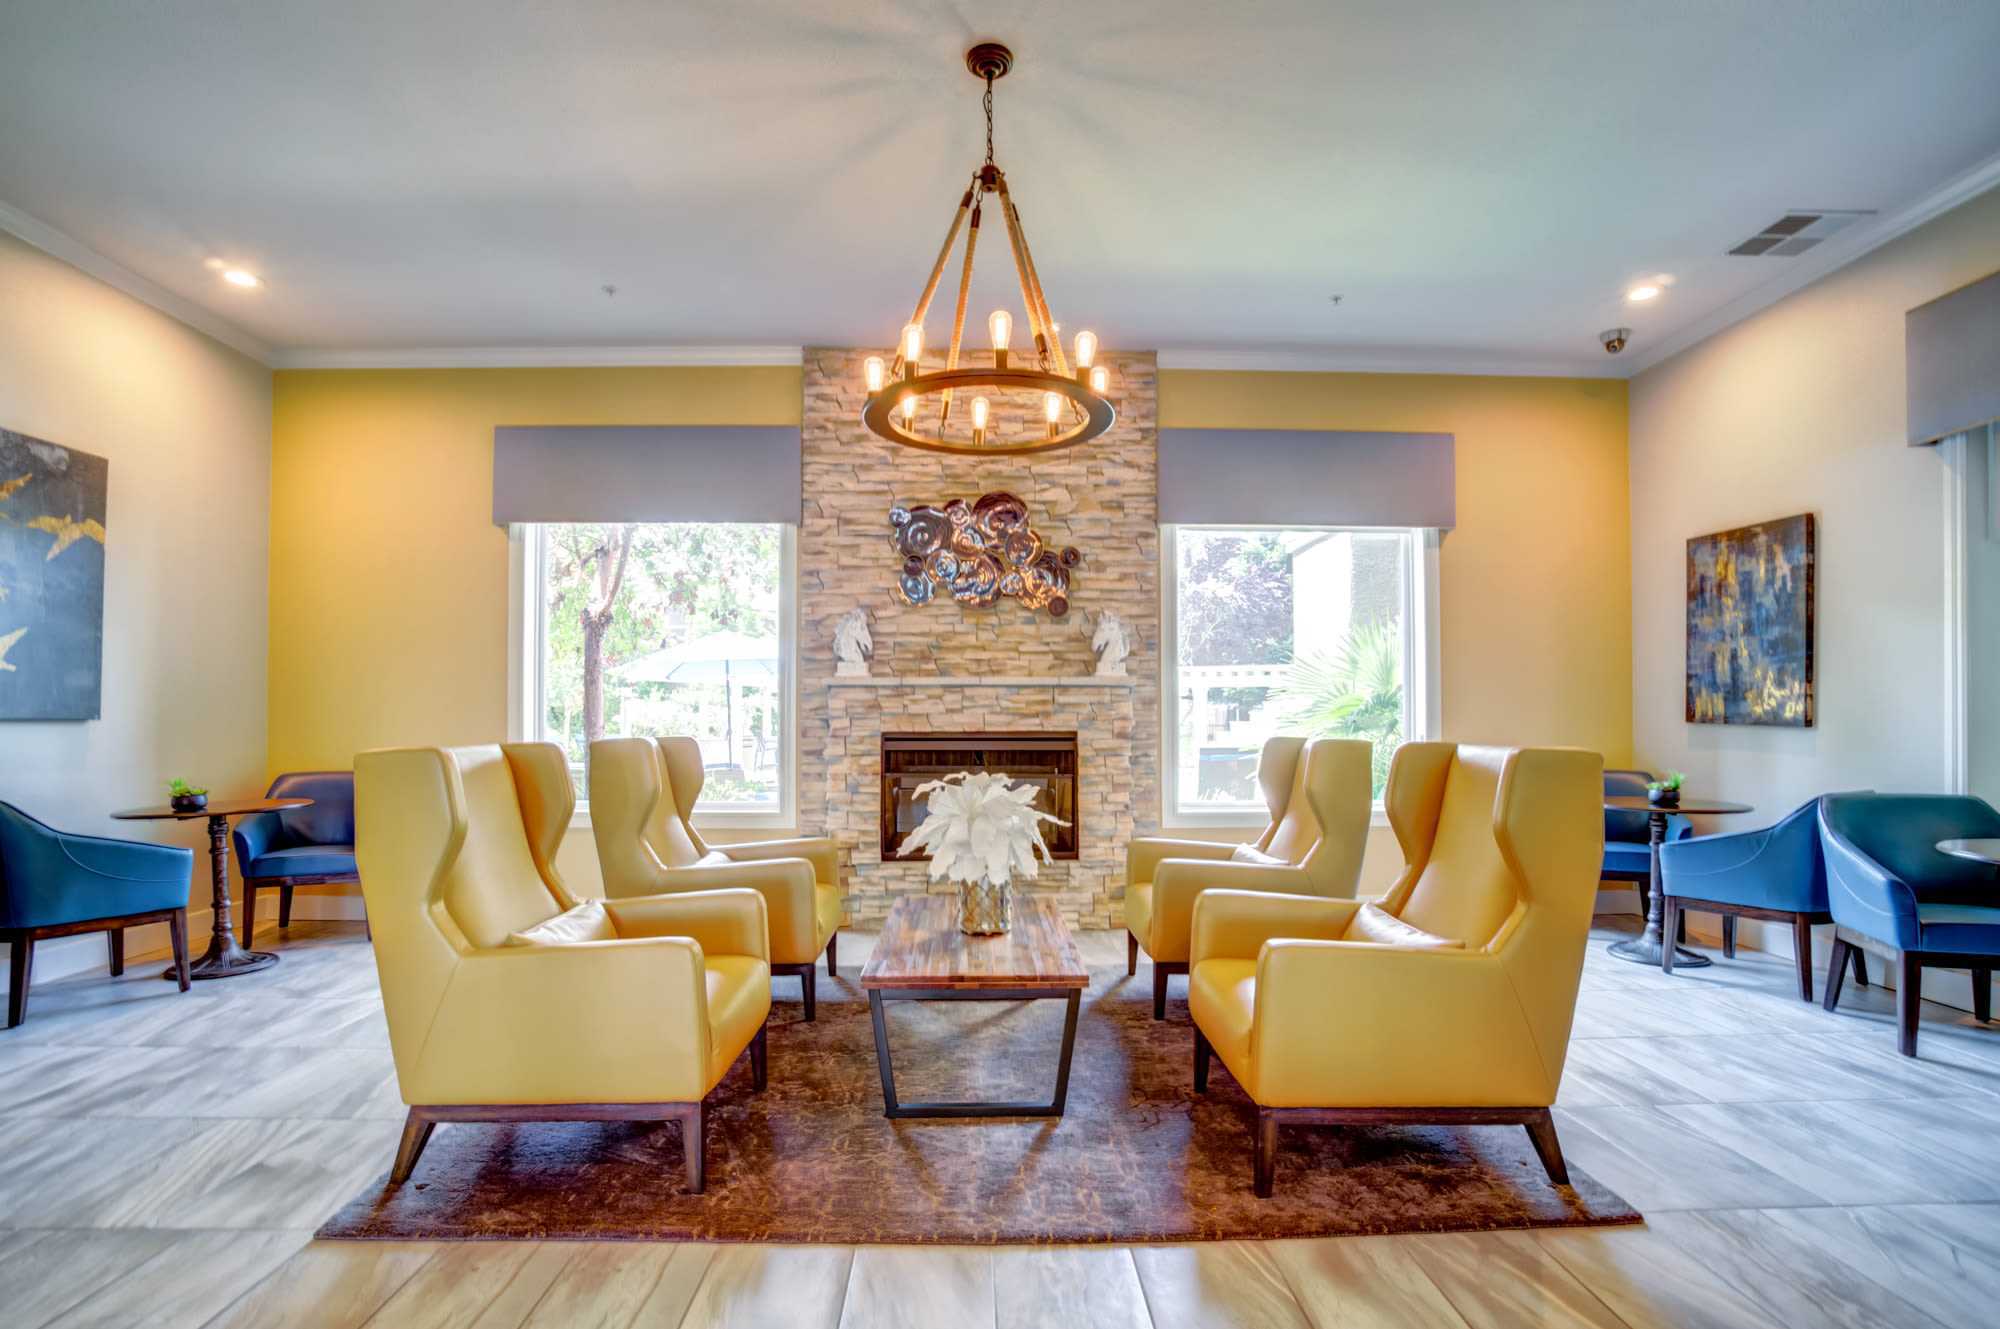 Community Lounge with fireplace at Hawthorn Village Apartments in Napa,CA